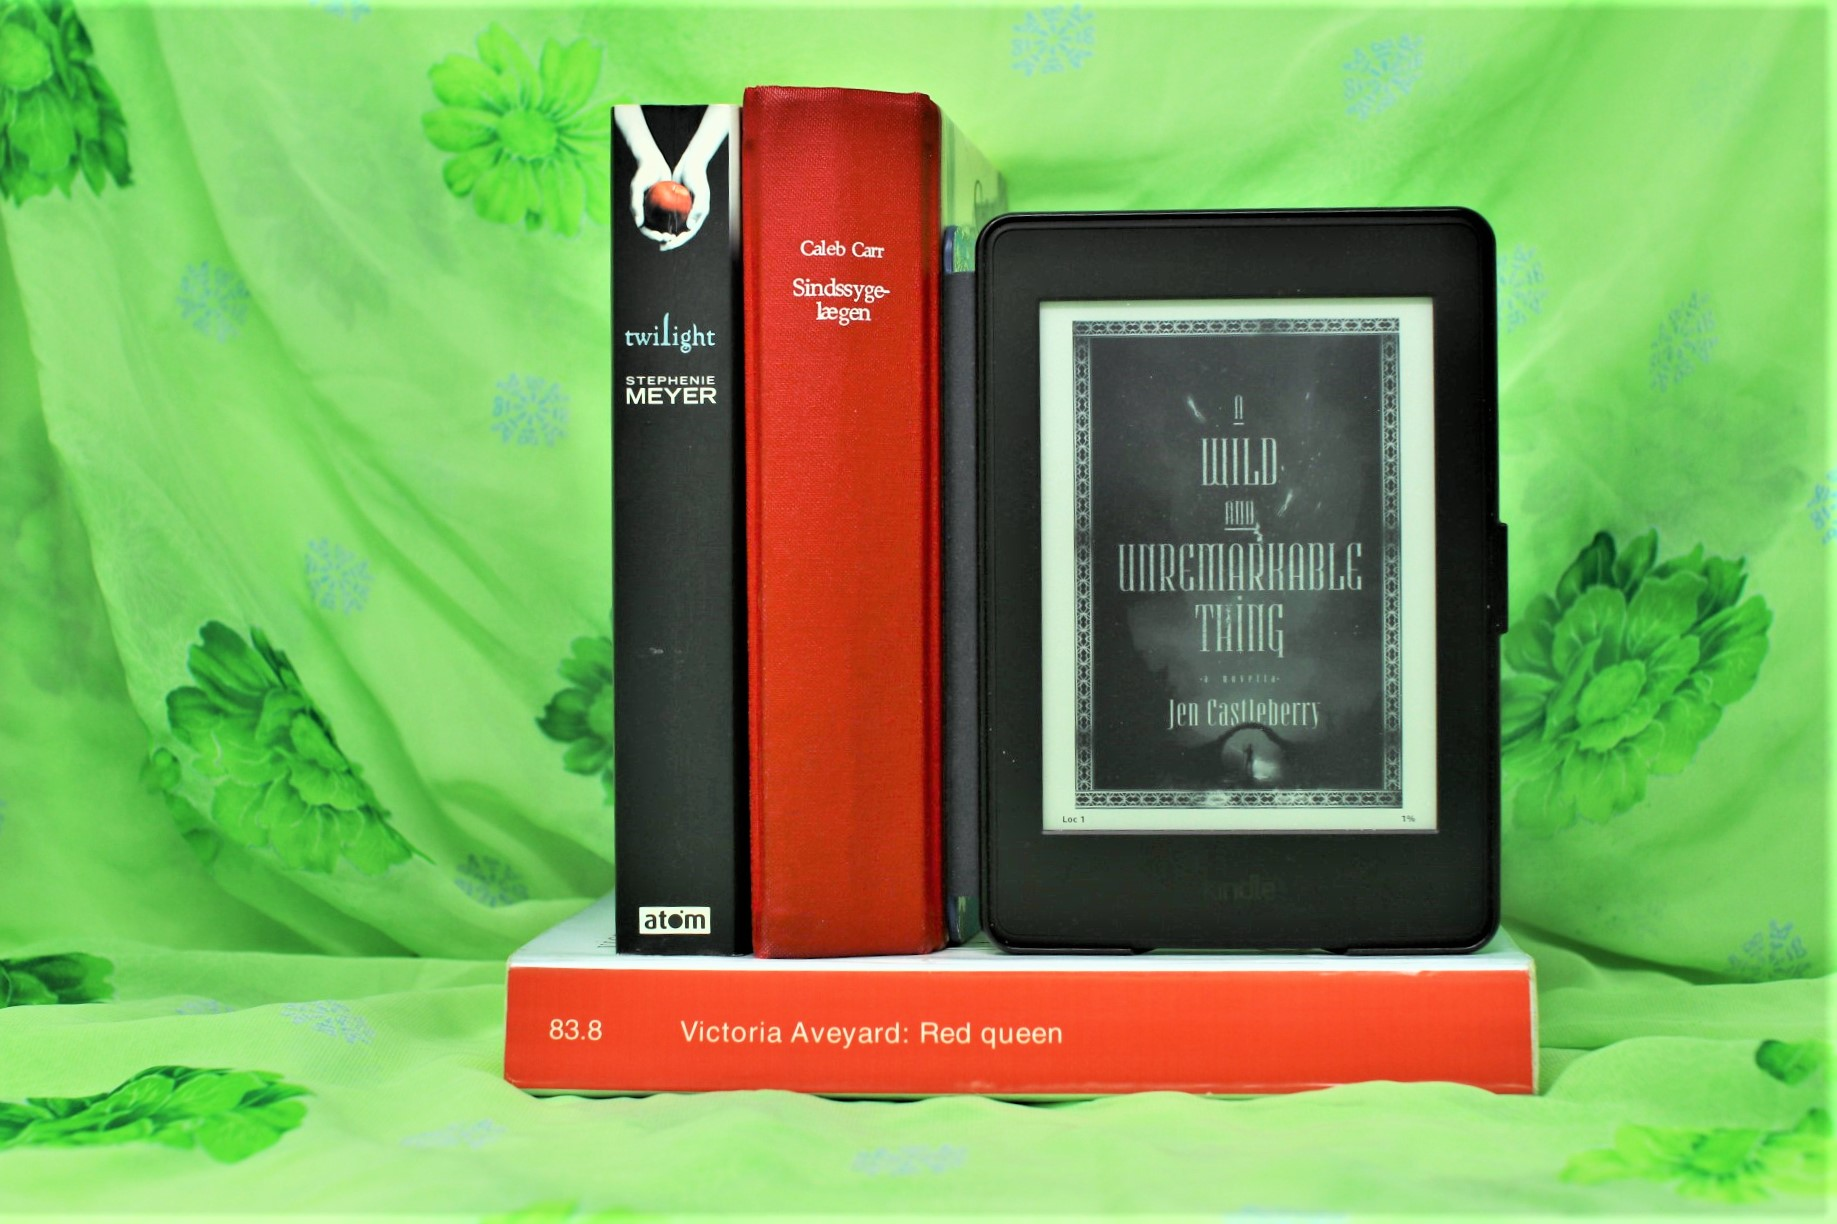 Four books, here amongst A WIld and Unremarkable Thing, on a green background.